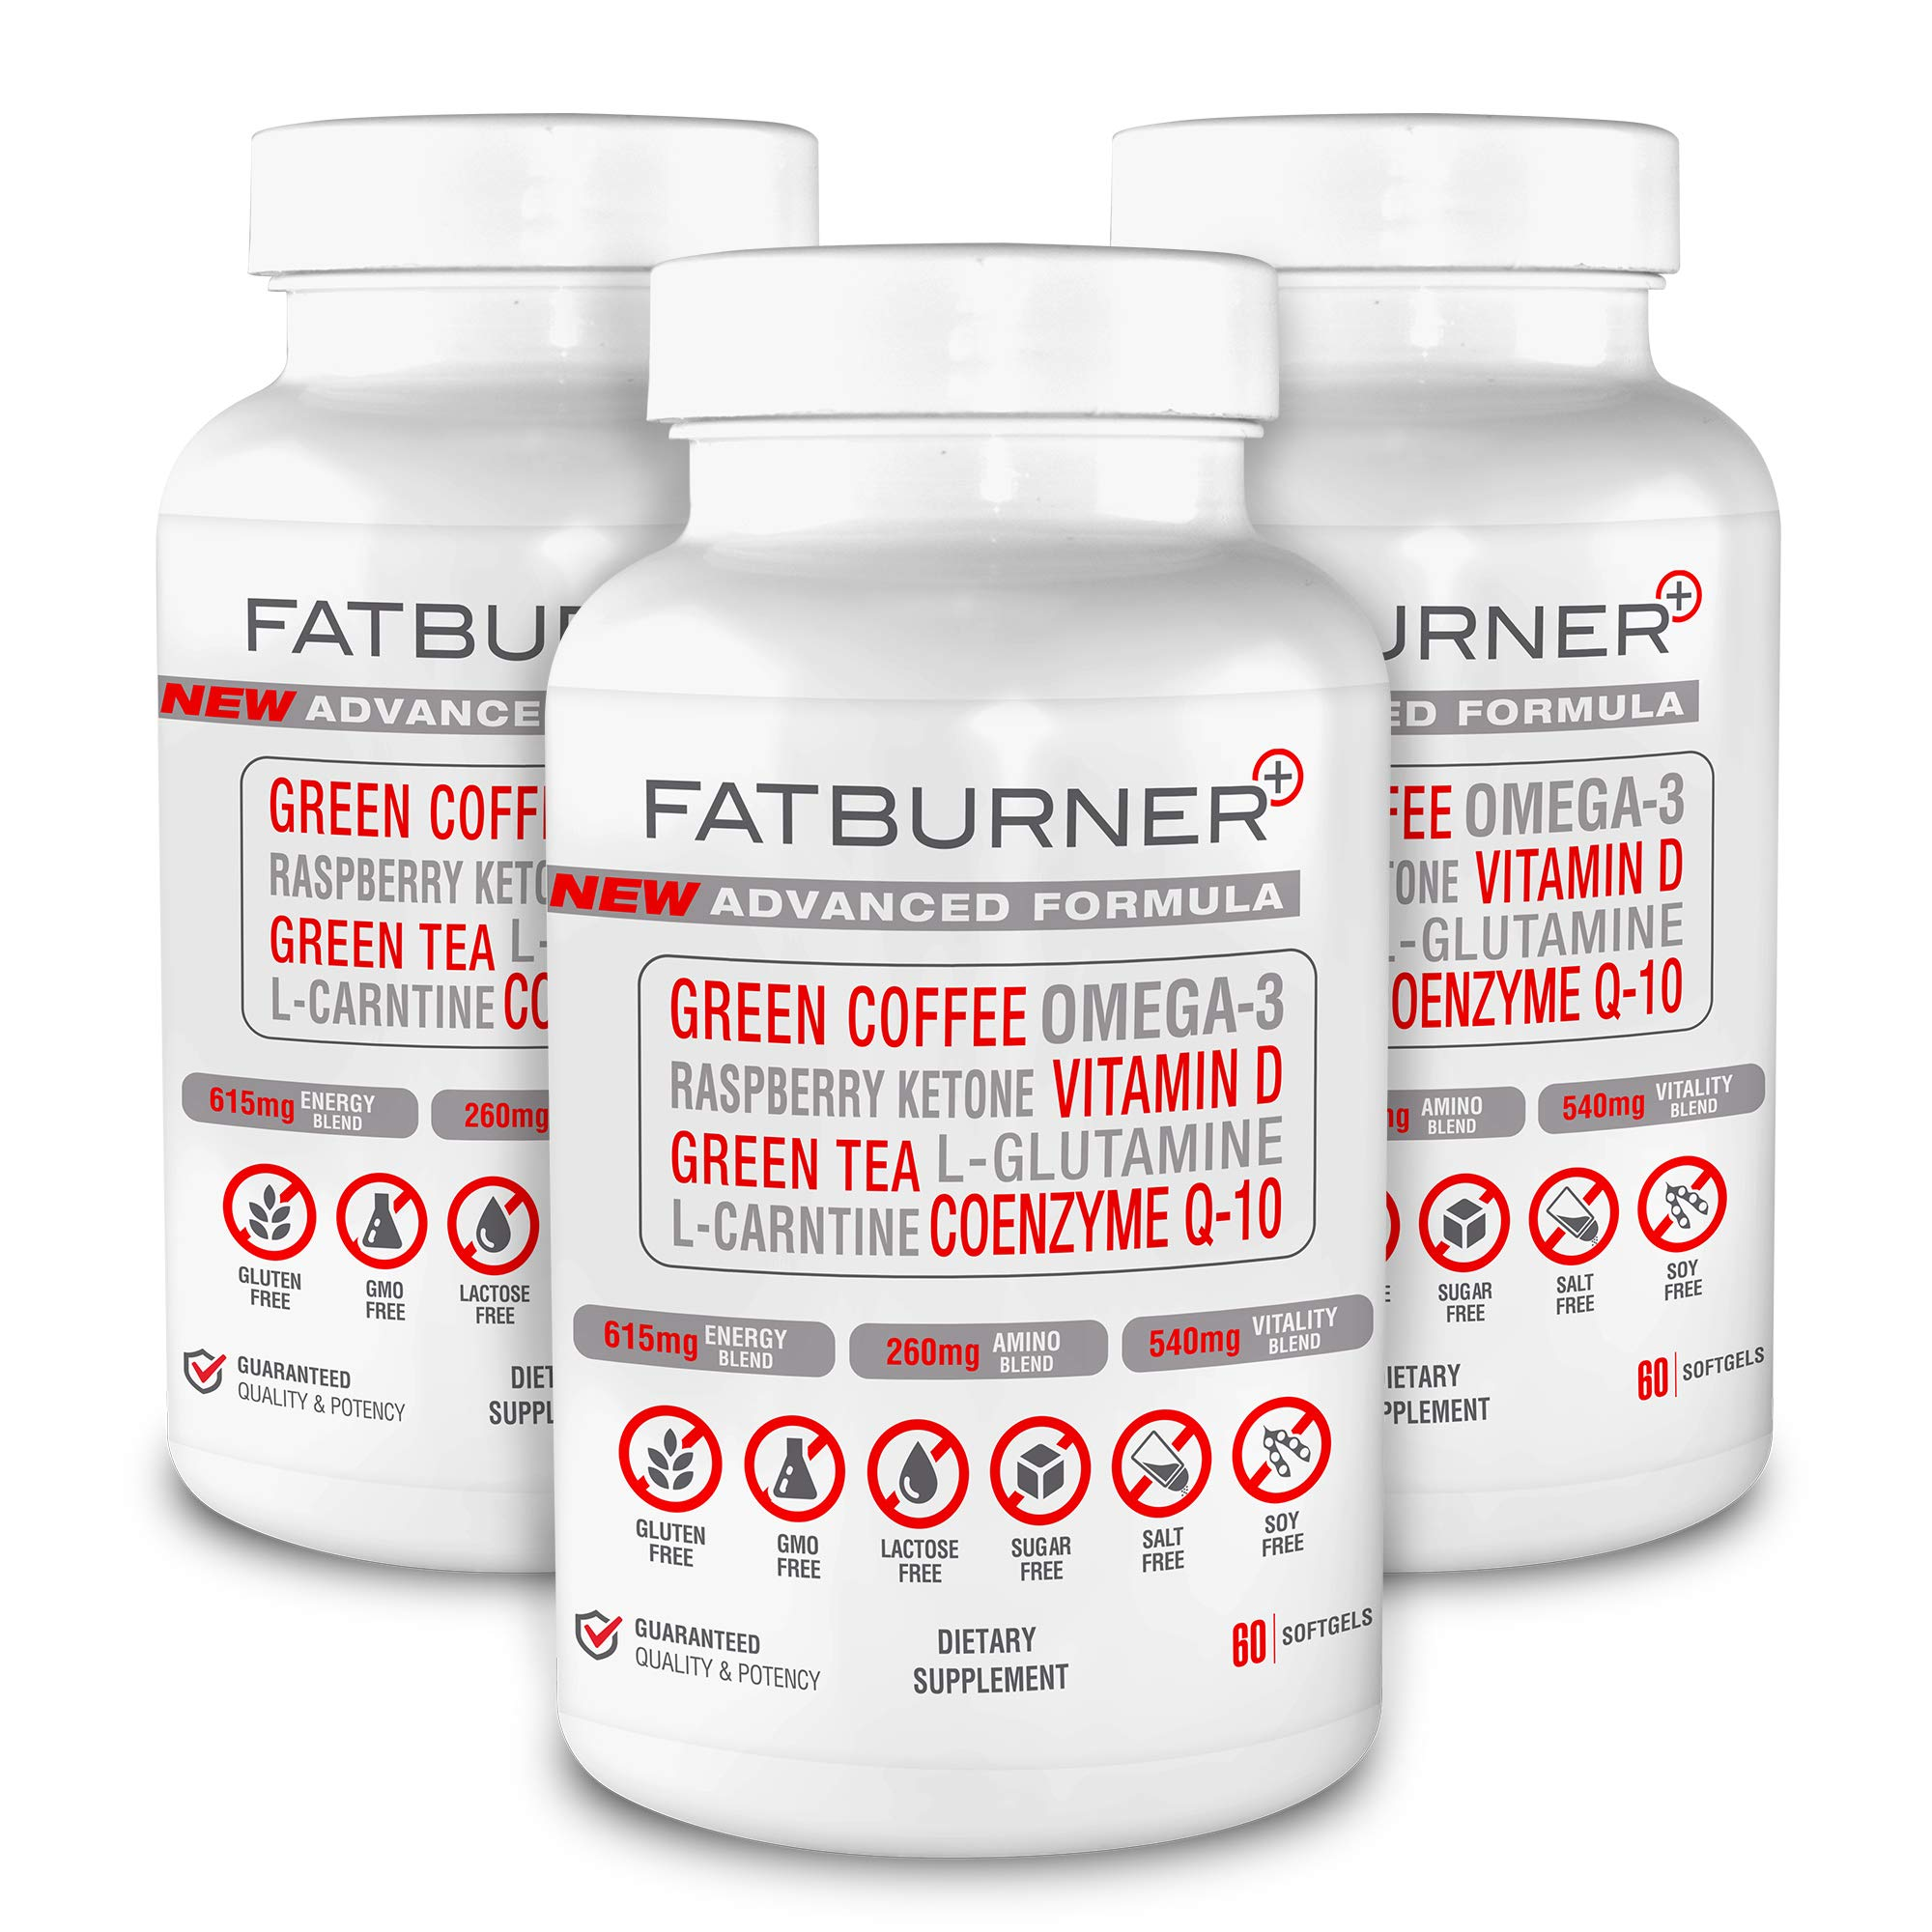 Fat Burner Plus - Advanced Weight-Loss System   Multi-Functional Supplement for Thermogenic Fat Burning + Athletic Performance + Anti-Aging (180ct. 3-Month Supply) by Plus Brands